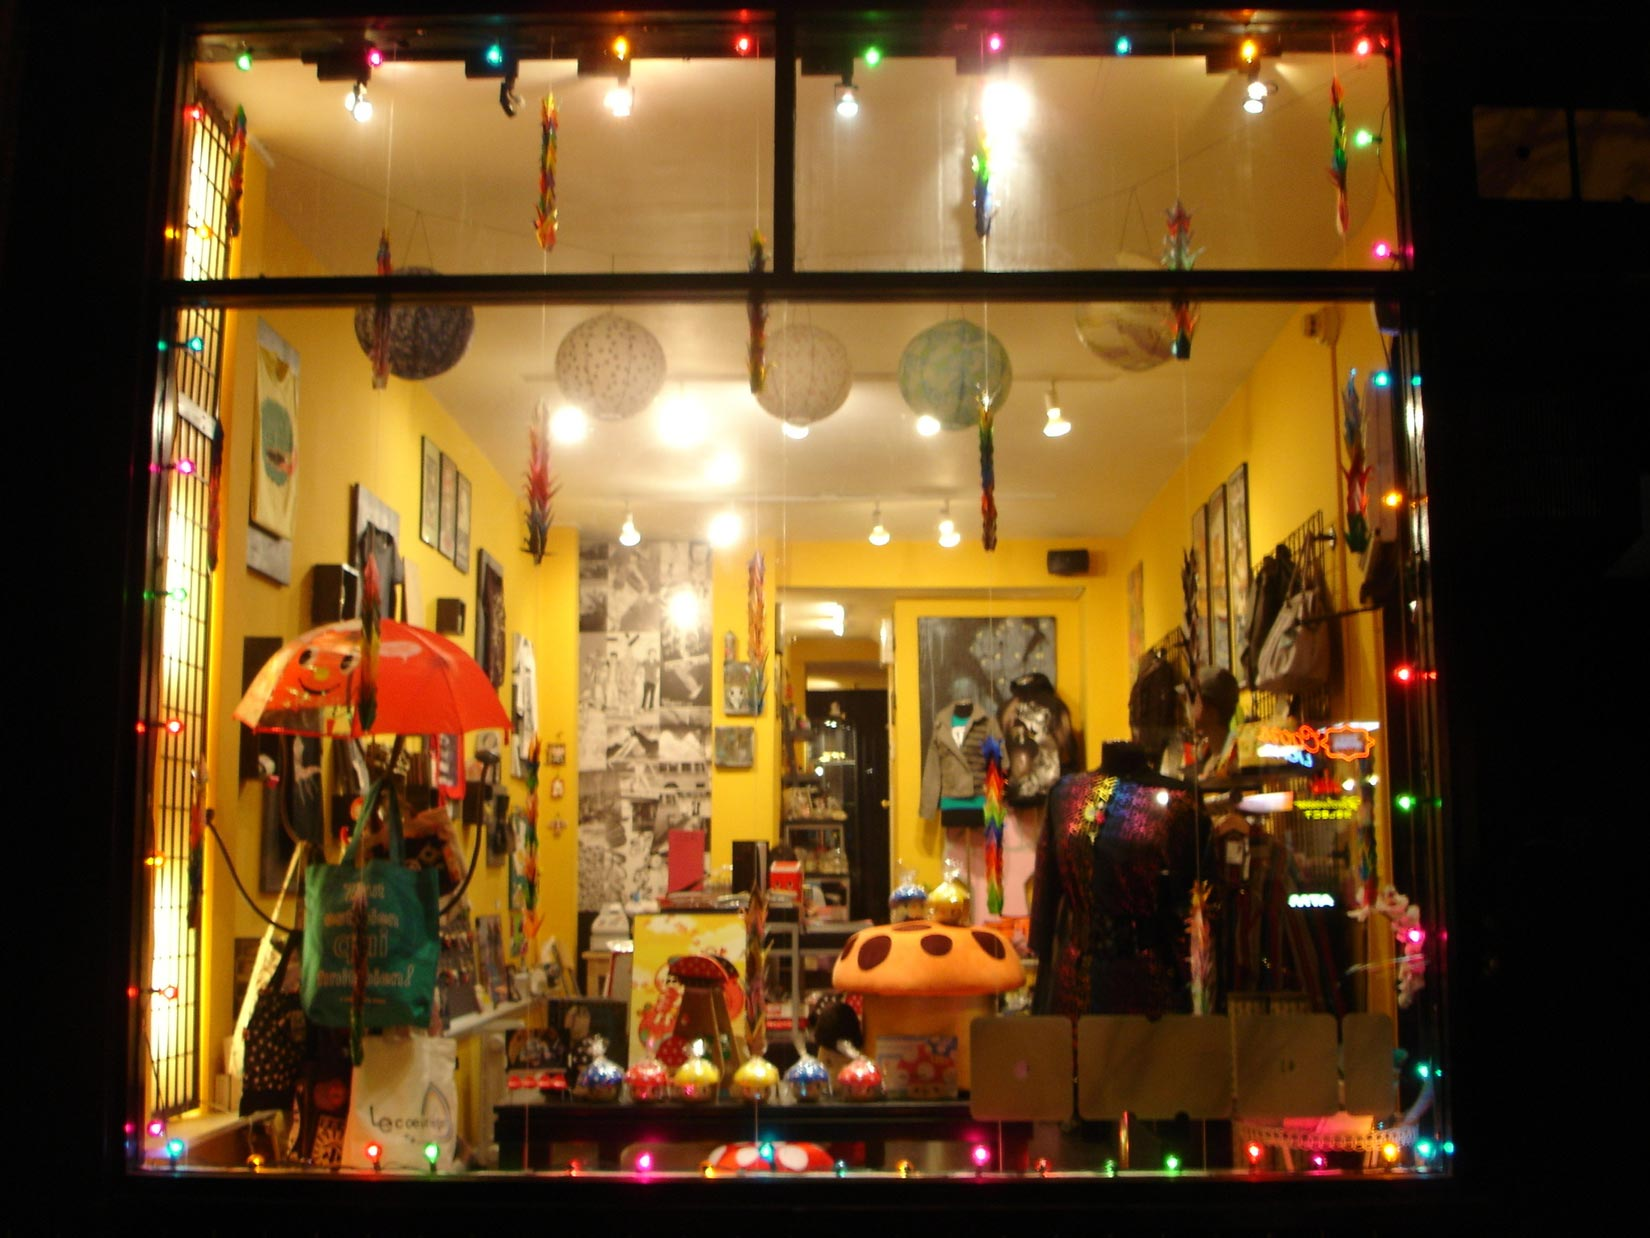 The storefront back in 2008, featuring the magic mushroom stool we all wish we bought